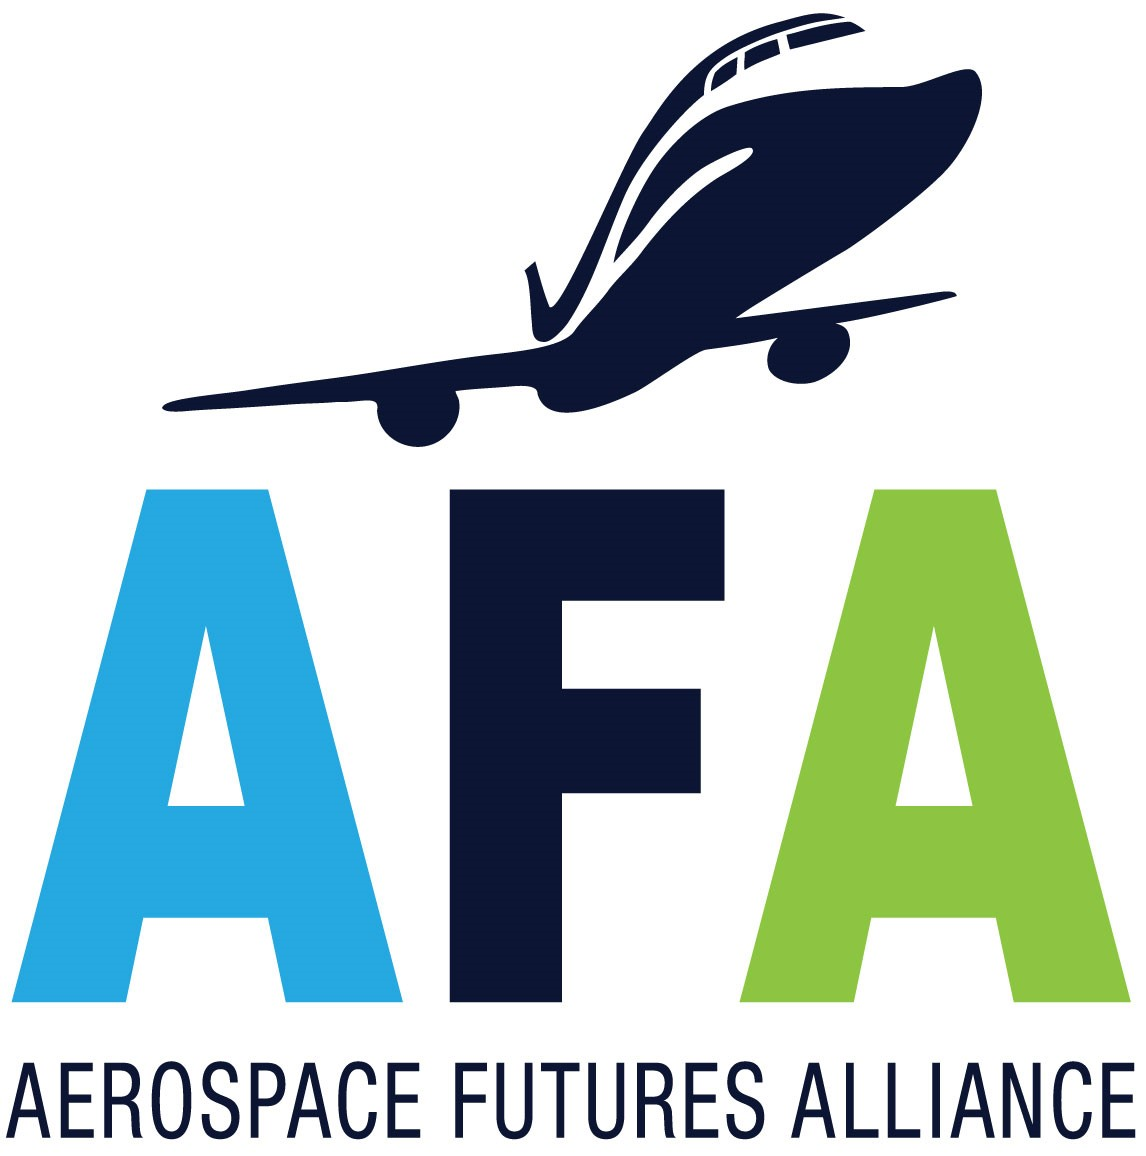 The Aerospace Futures Alliance and Washington State Space Coalition are hosting an aerospace job fair on January 7 at accesso ShoWare.